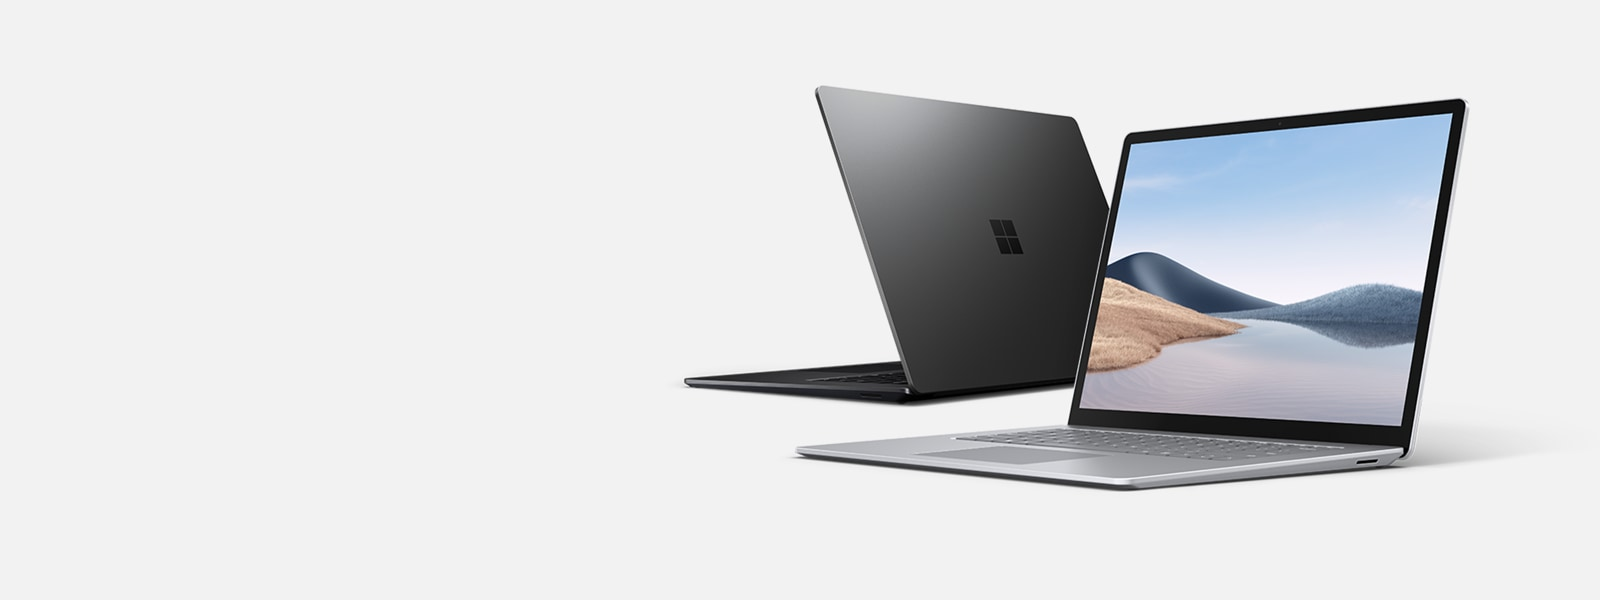 Surface Laptop 4 s prikazom zaslona in tipkovnice.